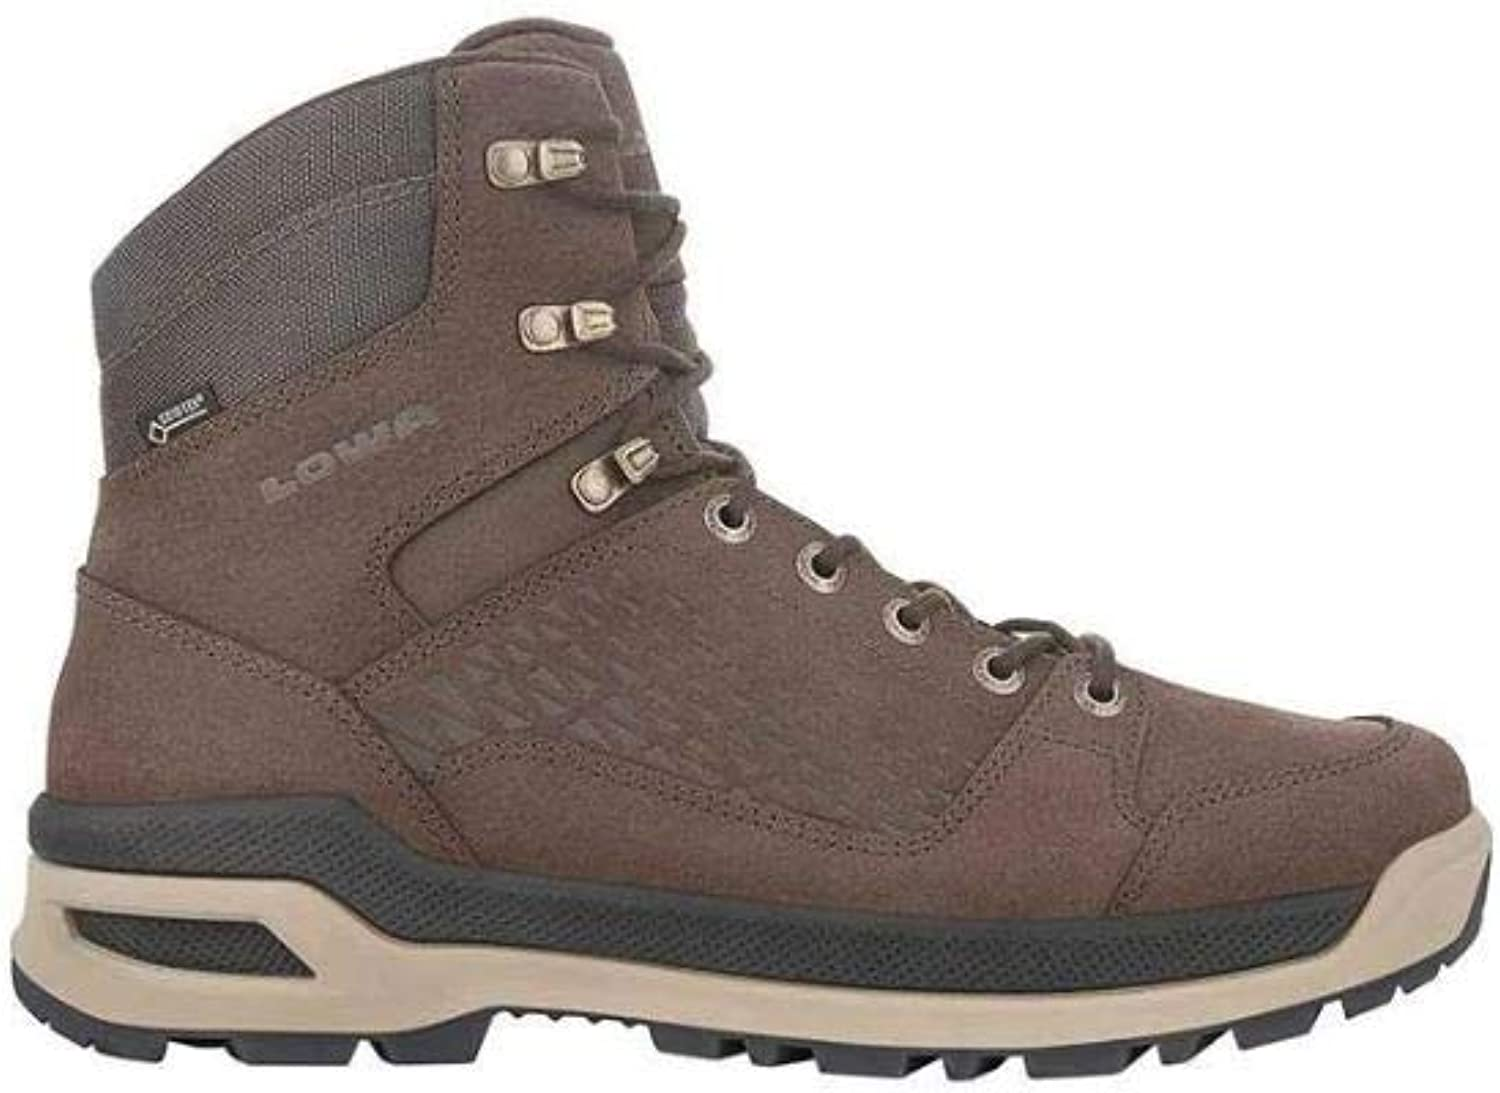 LOWA Boots Men s Locarno Ice GTX Mid – Dark Brown 11 M US